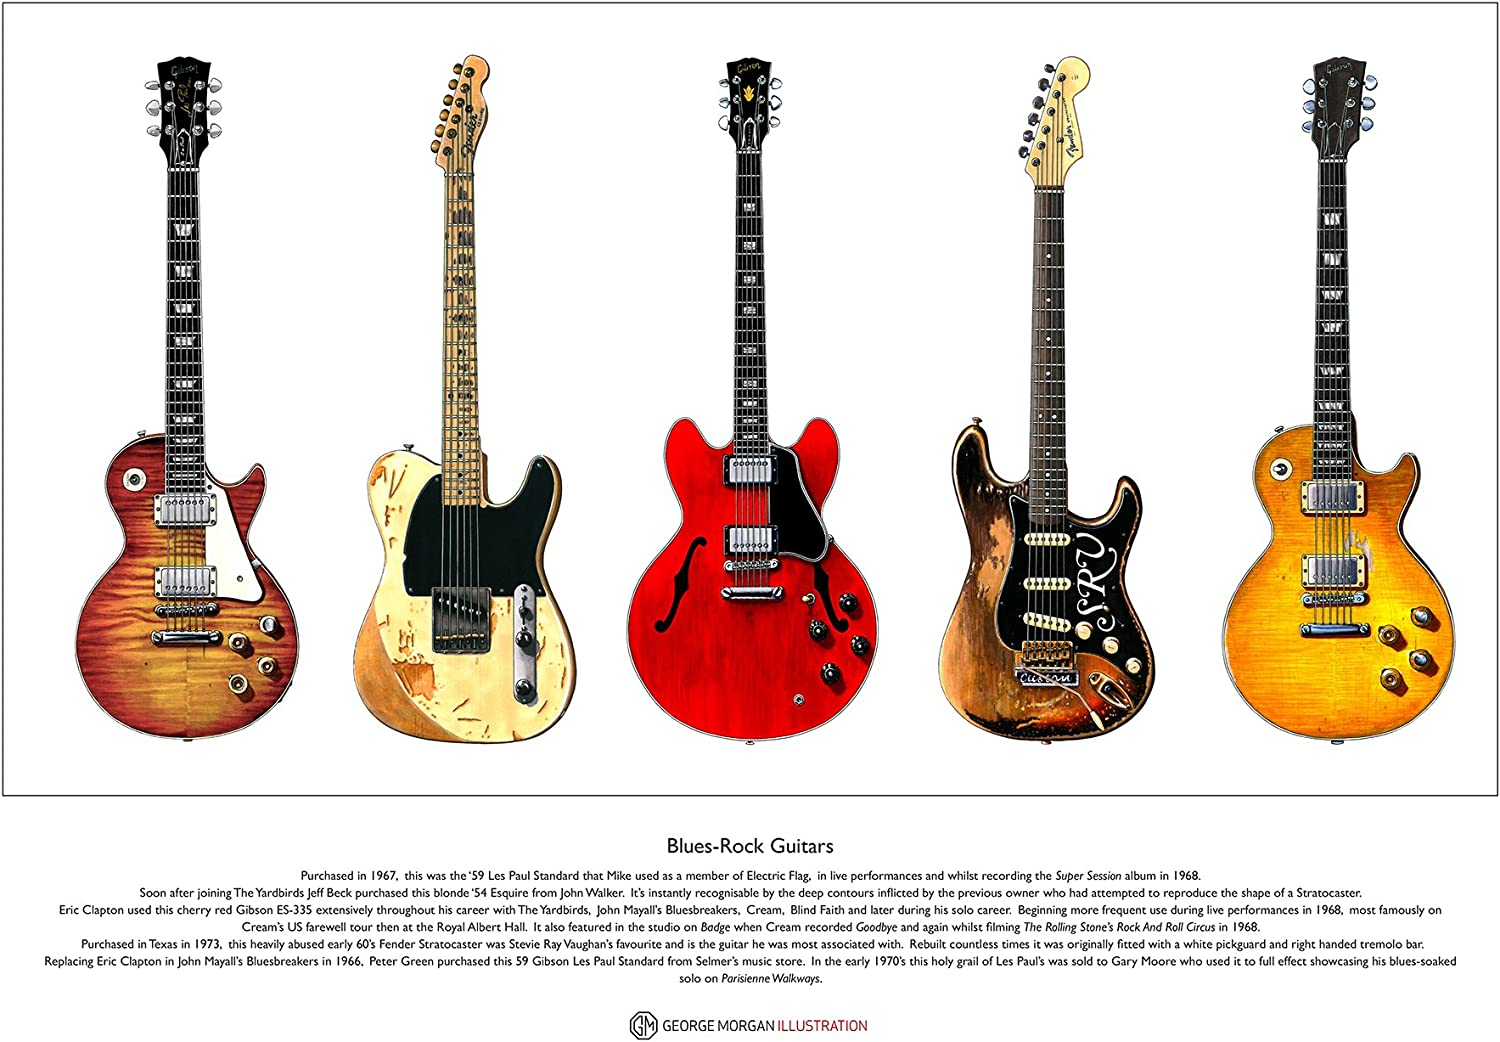 George Morgan Illustration Famosas Guitarras Blues-Rock edición ...